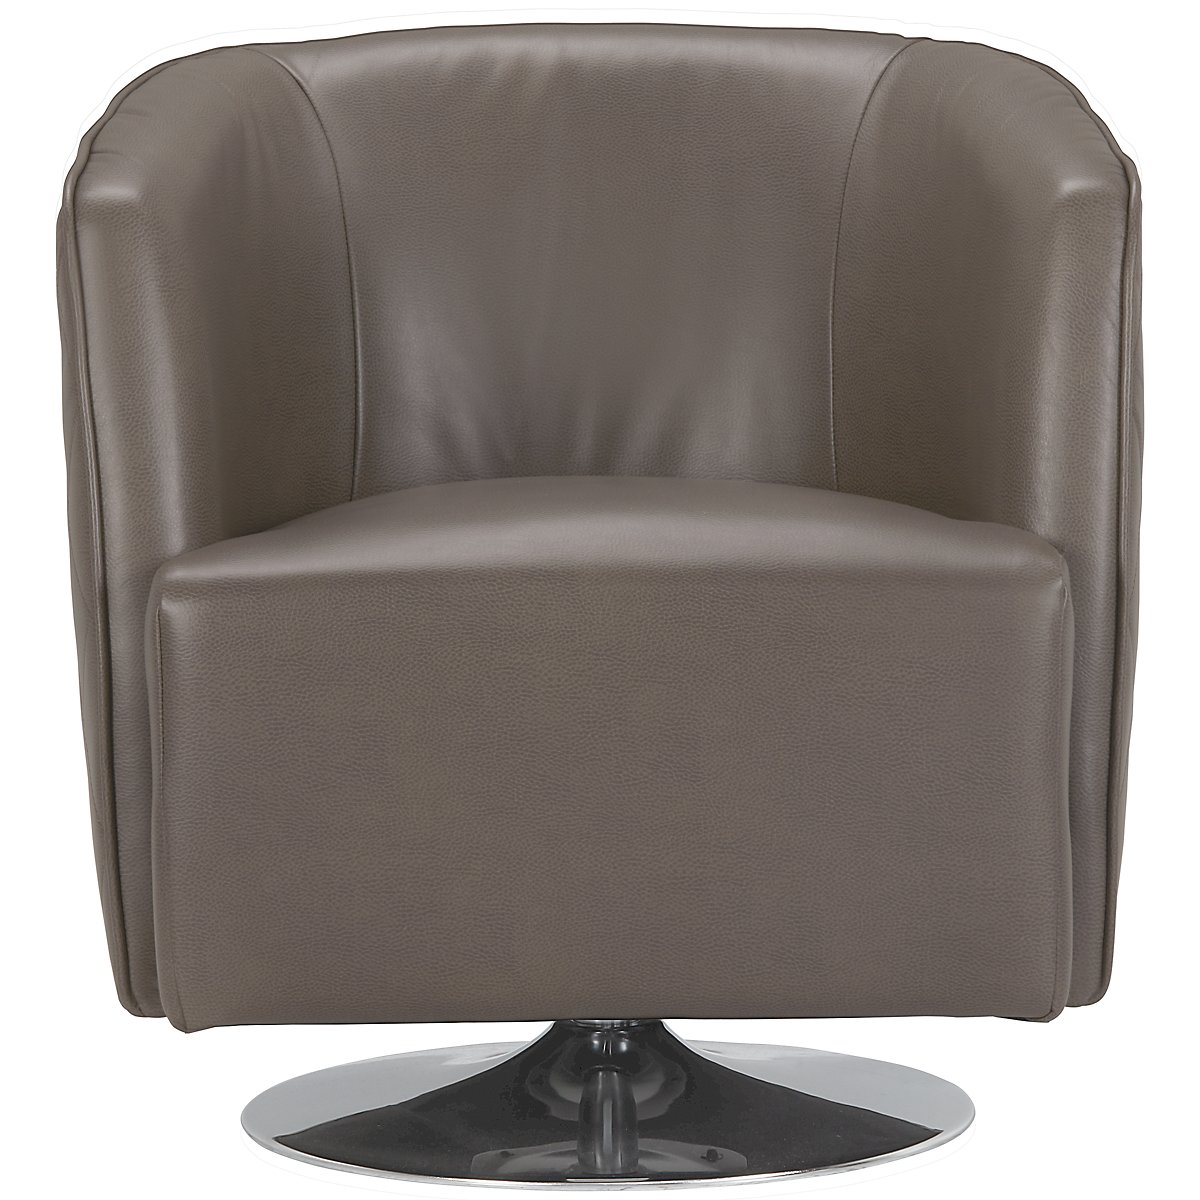 Loki dark gray microfiber swivel accent chair for Swivel chairs living room sale